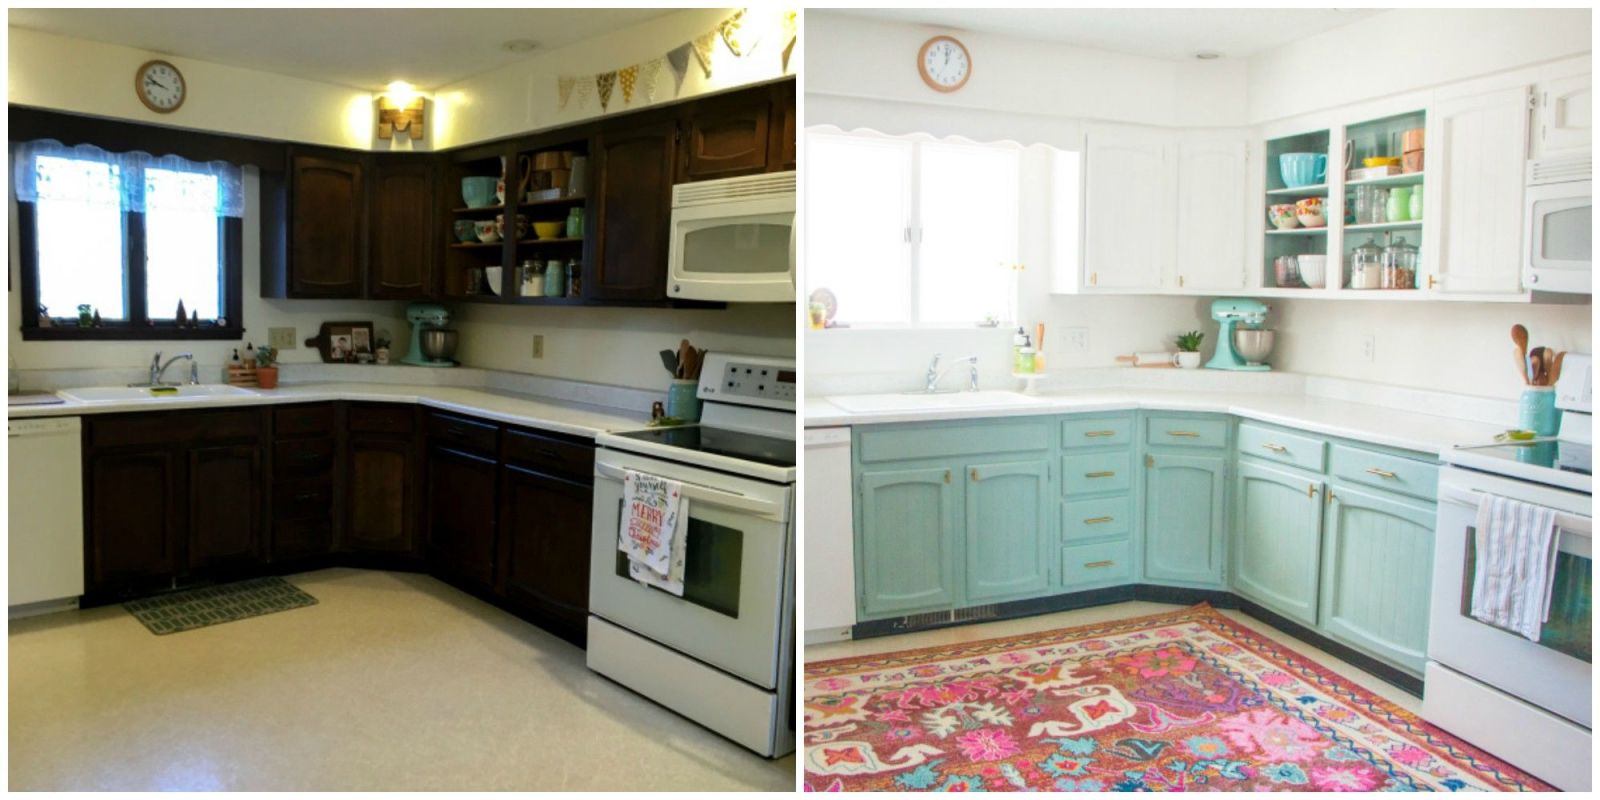 Kitchen Makeover Before Afters Kitchen Remodeling Ideas Kitchen Design Photos Before And After